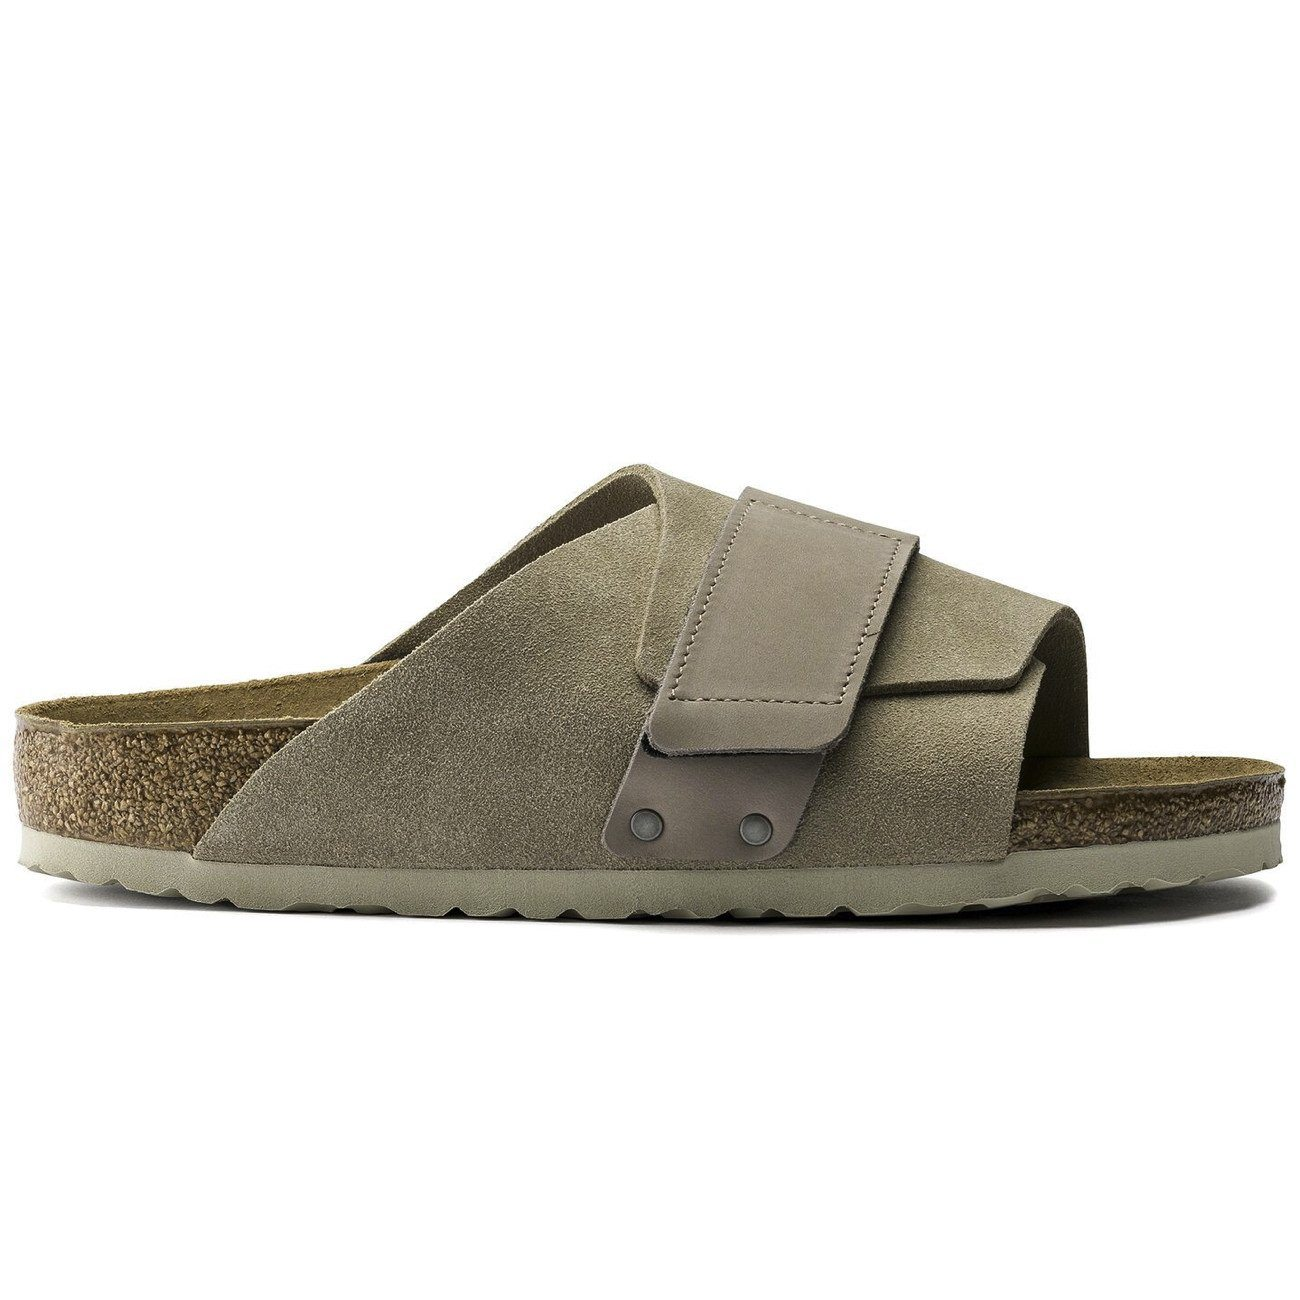 Birkenstock Seasonal, Kyoto, Suede/Nubuck Leather, Narrow Fit, Taupe Sandals Birkenstock Seasonal Taupe 36